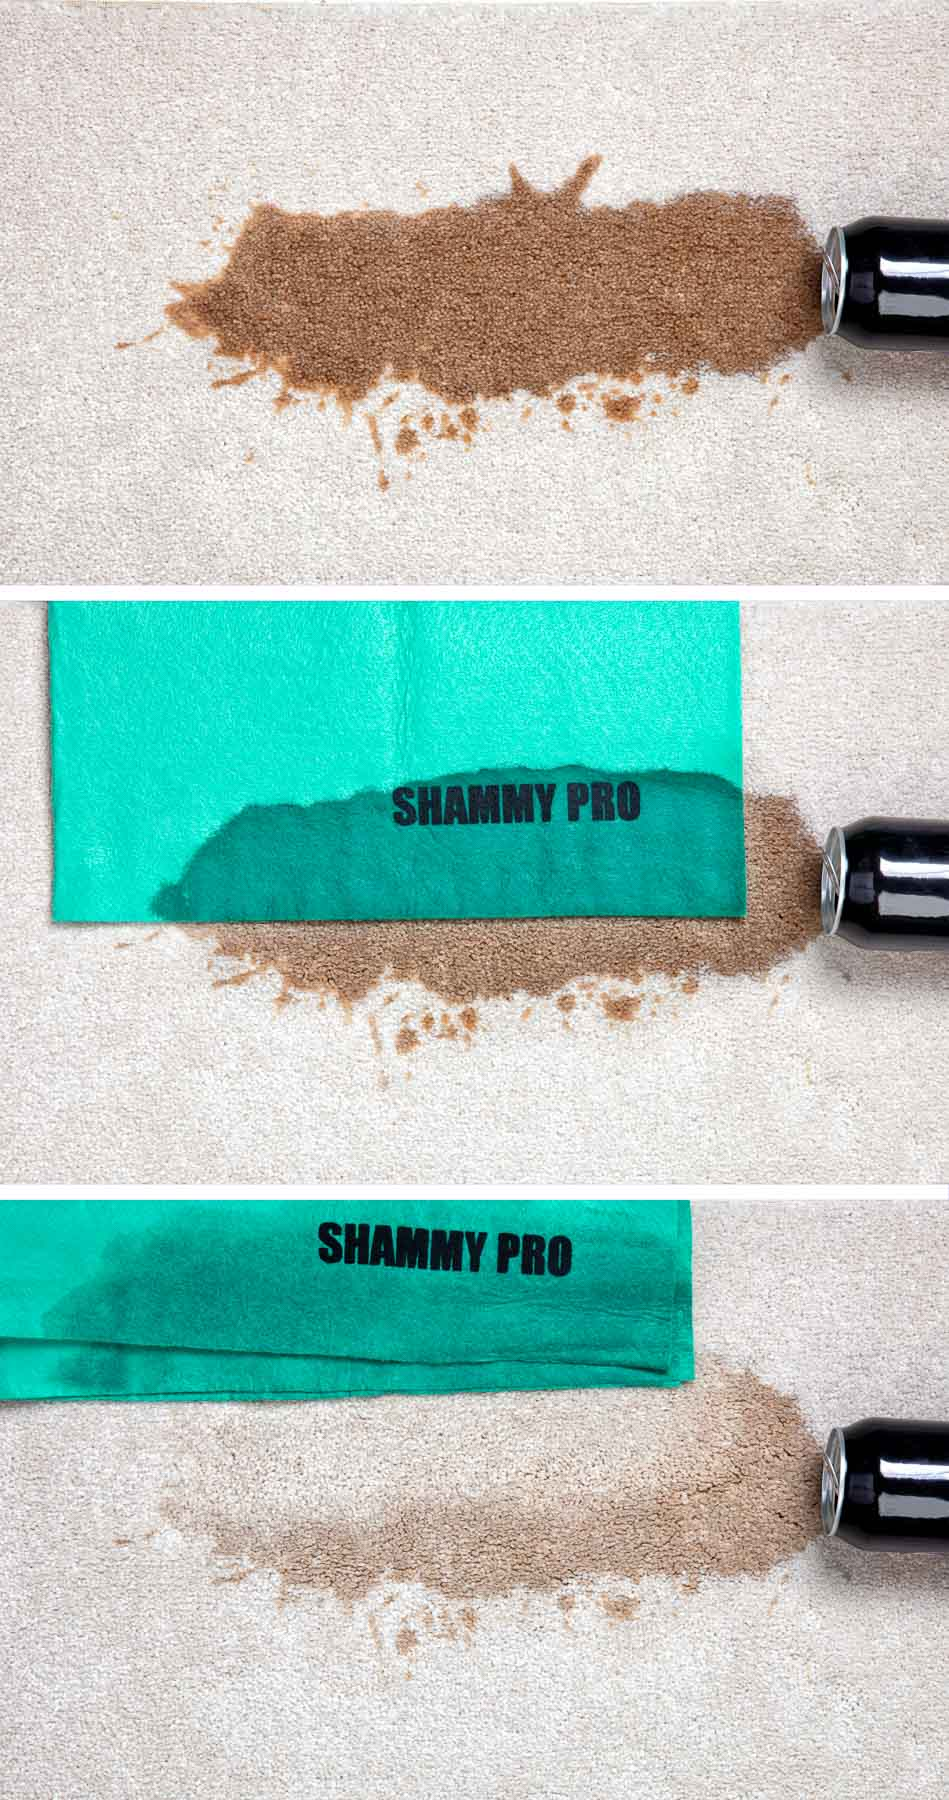 Shammy Pro Carpet demo wider 3 steps same image - Sample of in-use advertising photography